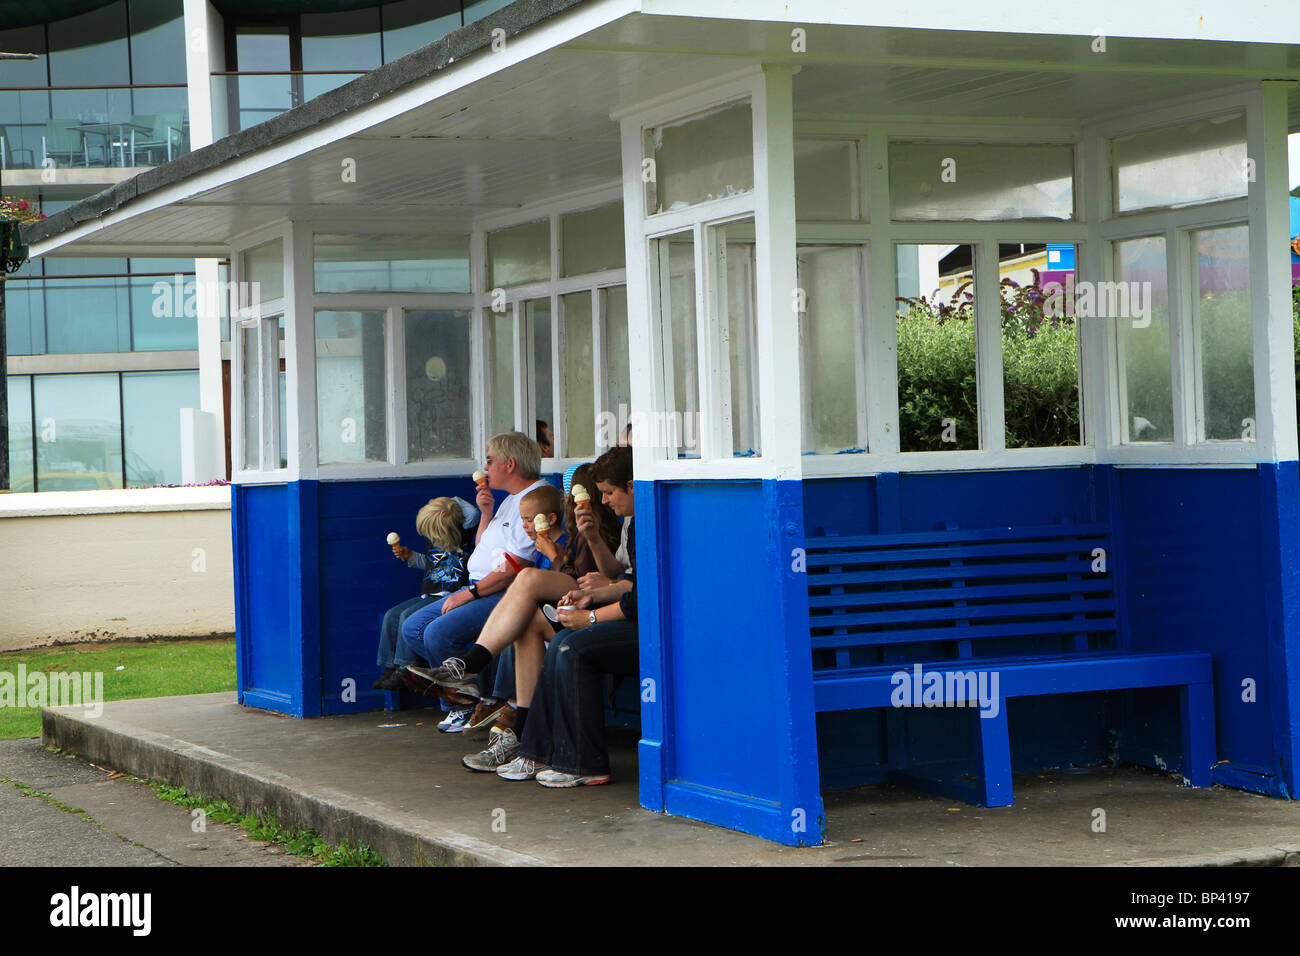 Family eating ice-creams in shelter on esplanade at Westward Ho!, Devon, UK - Stock Image